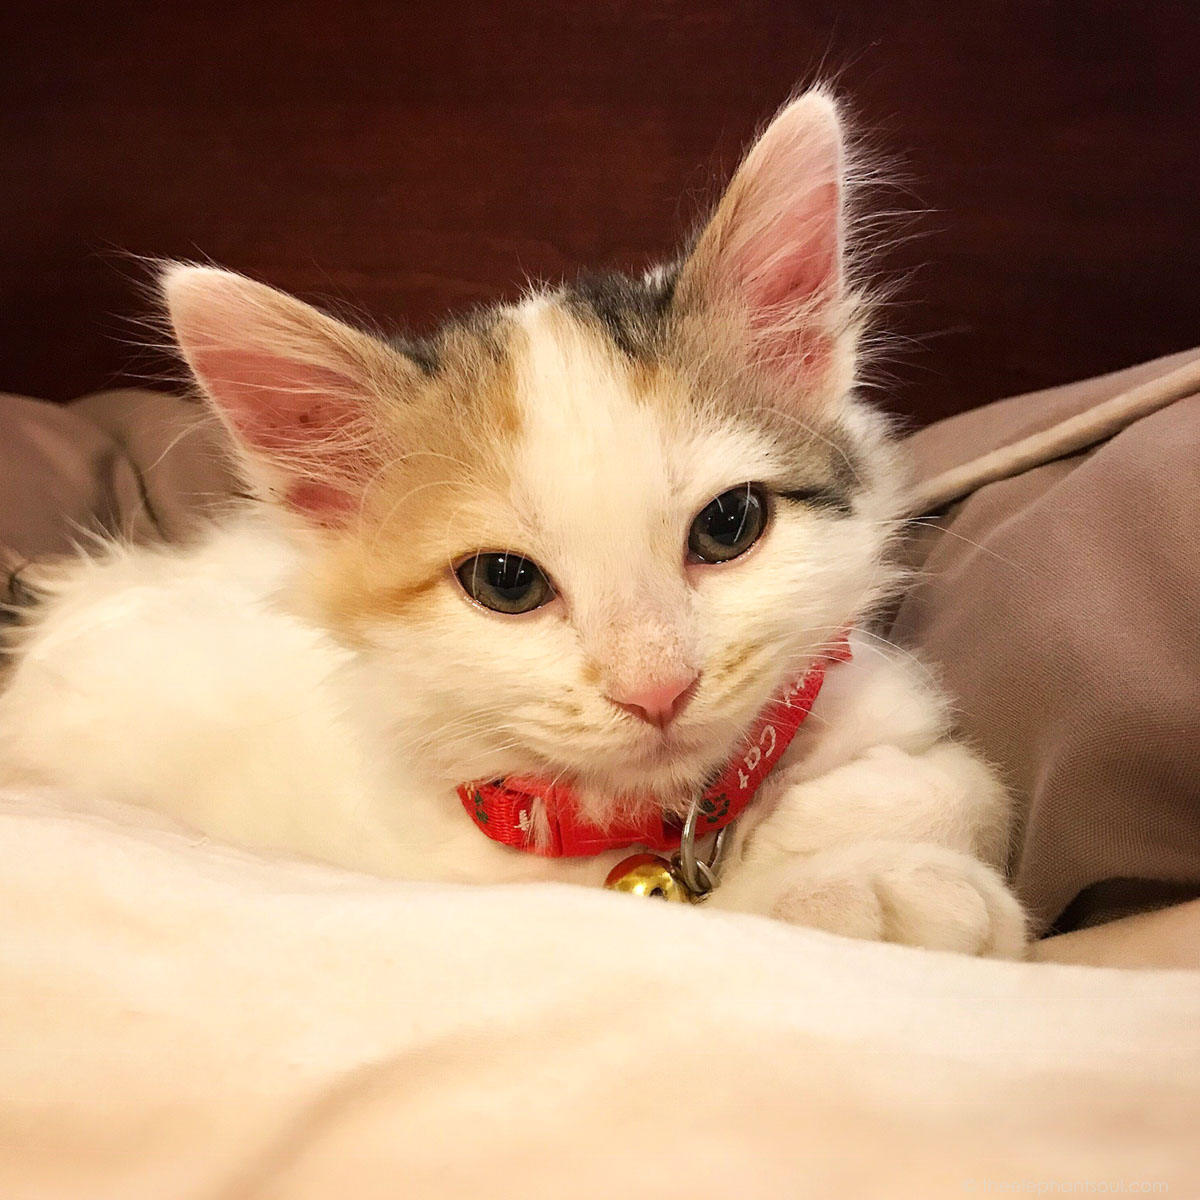 Our precious kitten Najia when she was three months old.